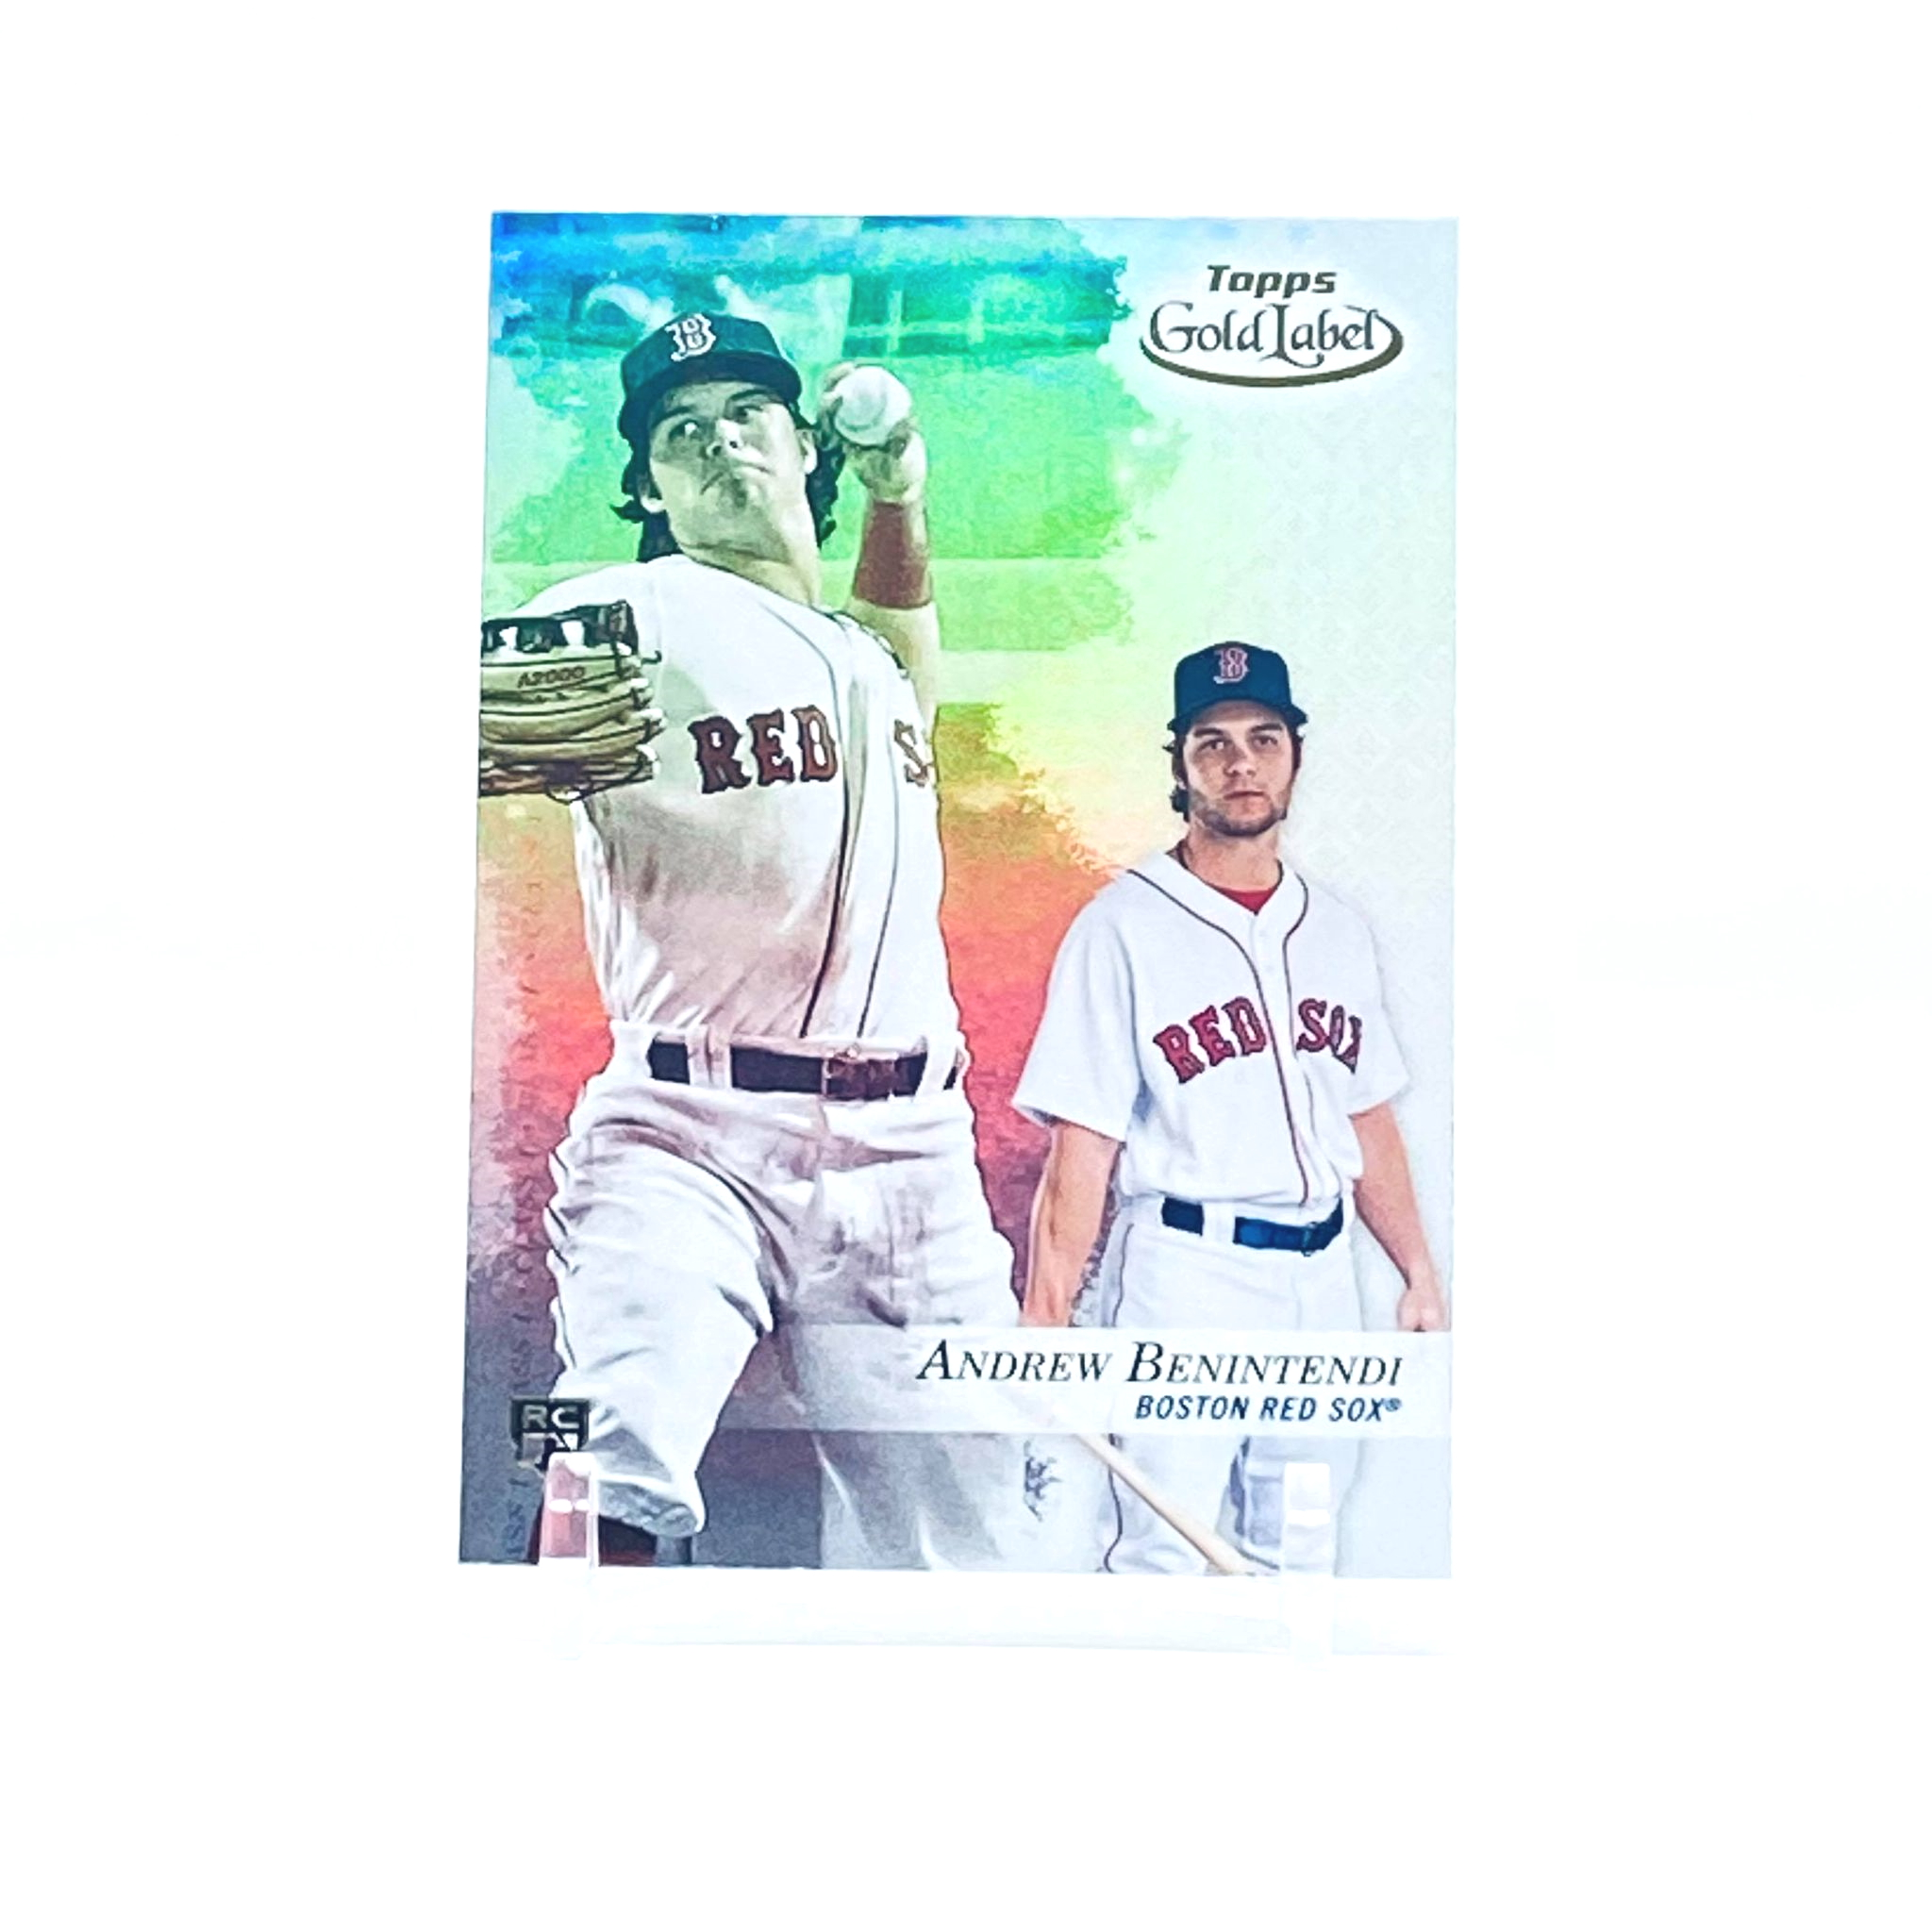 2017 Topps Gold Label Class 1 Andrew Benintendi Rookie Card Boston Red Sox